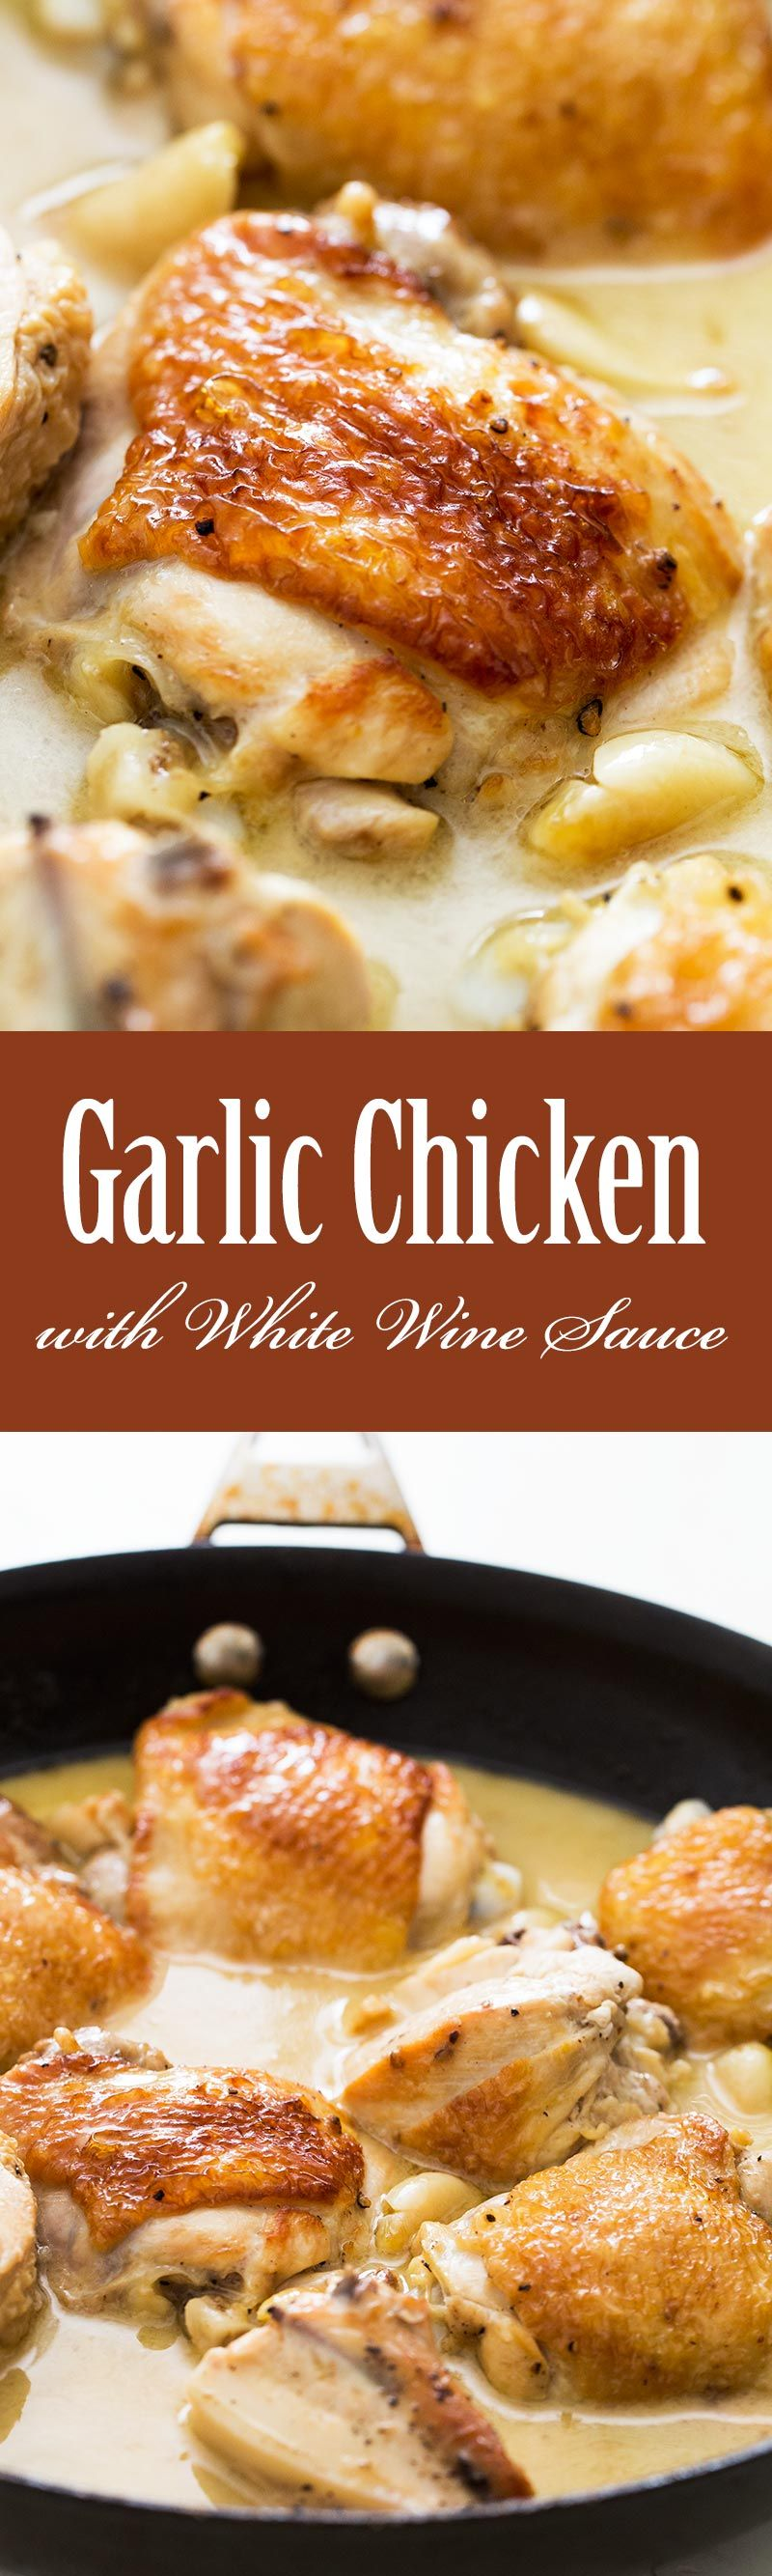 1-Pot Stovetop 40 Clove Garlic Chicken! Chicken browned first in olive oil, then braised in white w